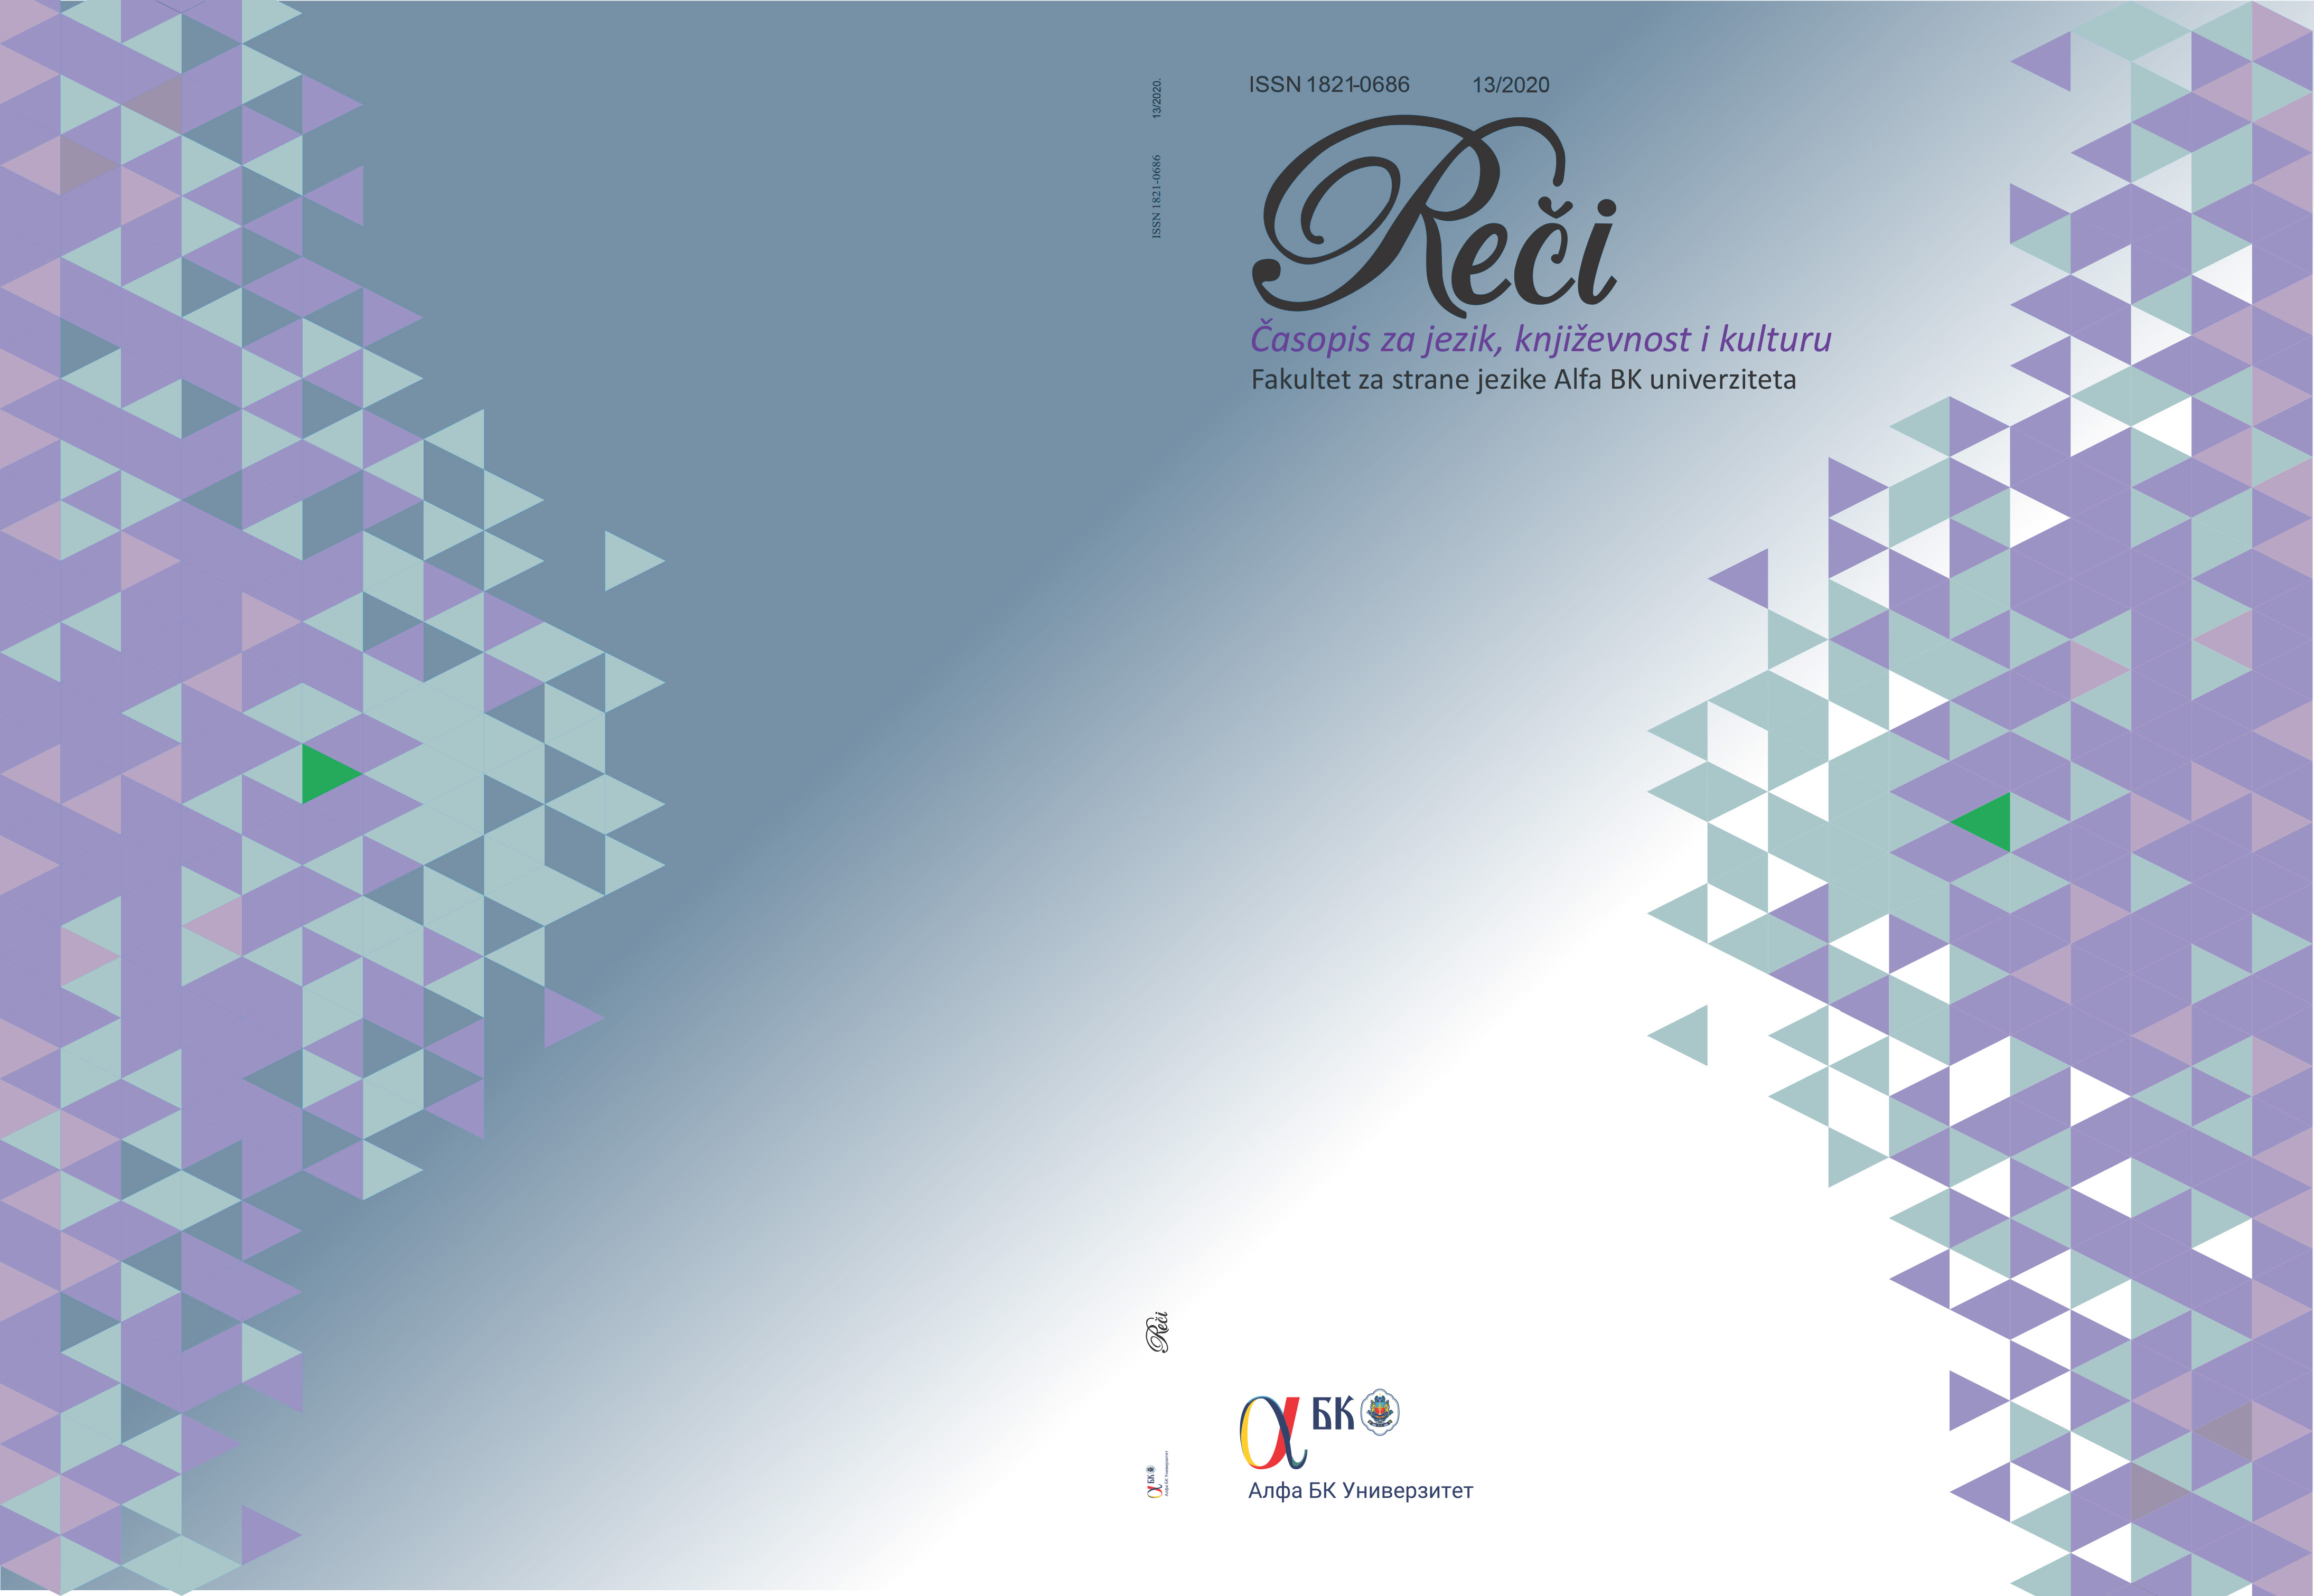 View No. 13 (2020): Reči, Journal of Language, Literature and Culture